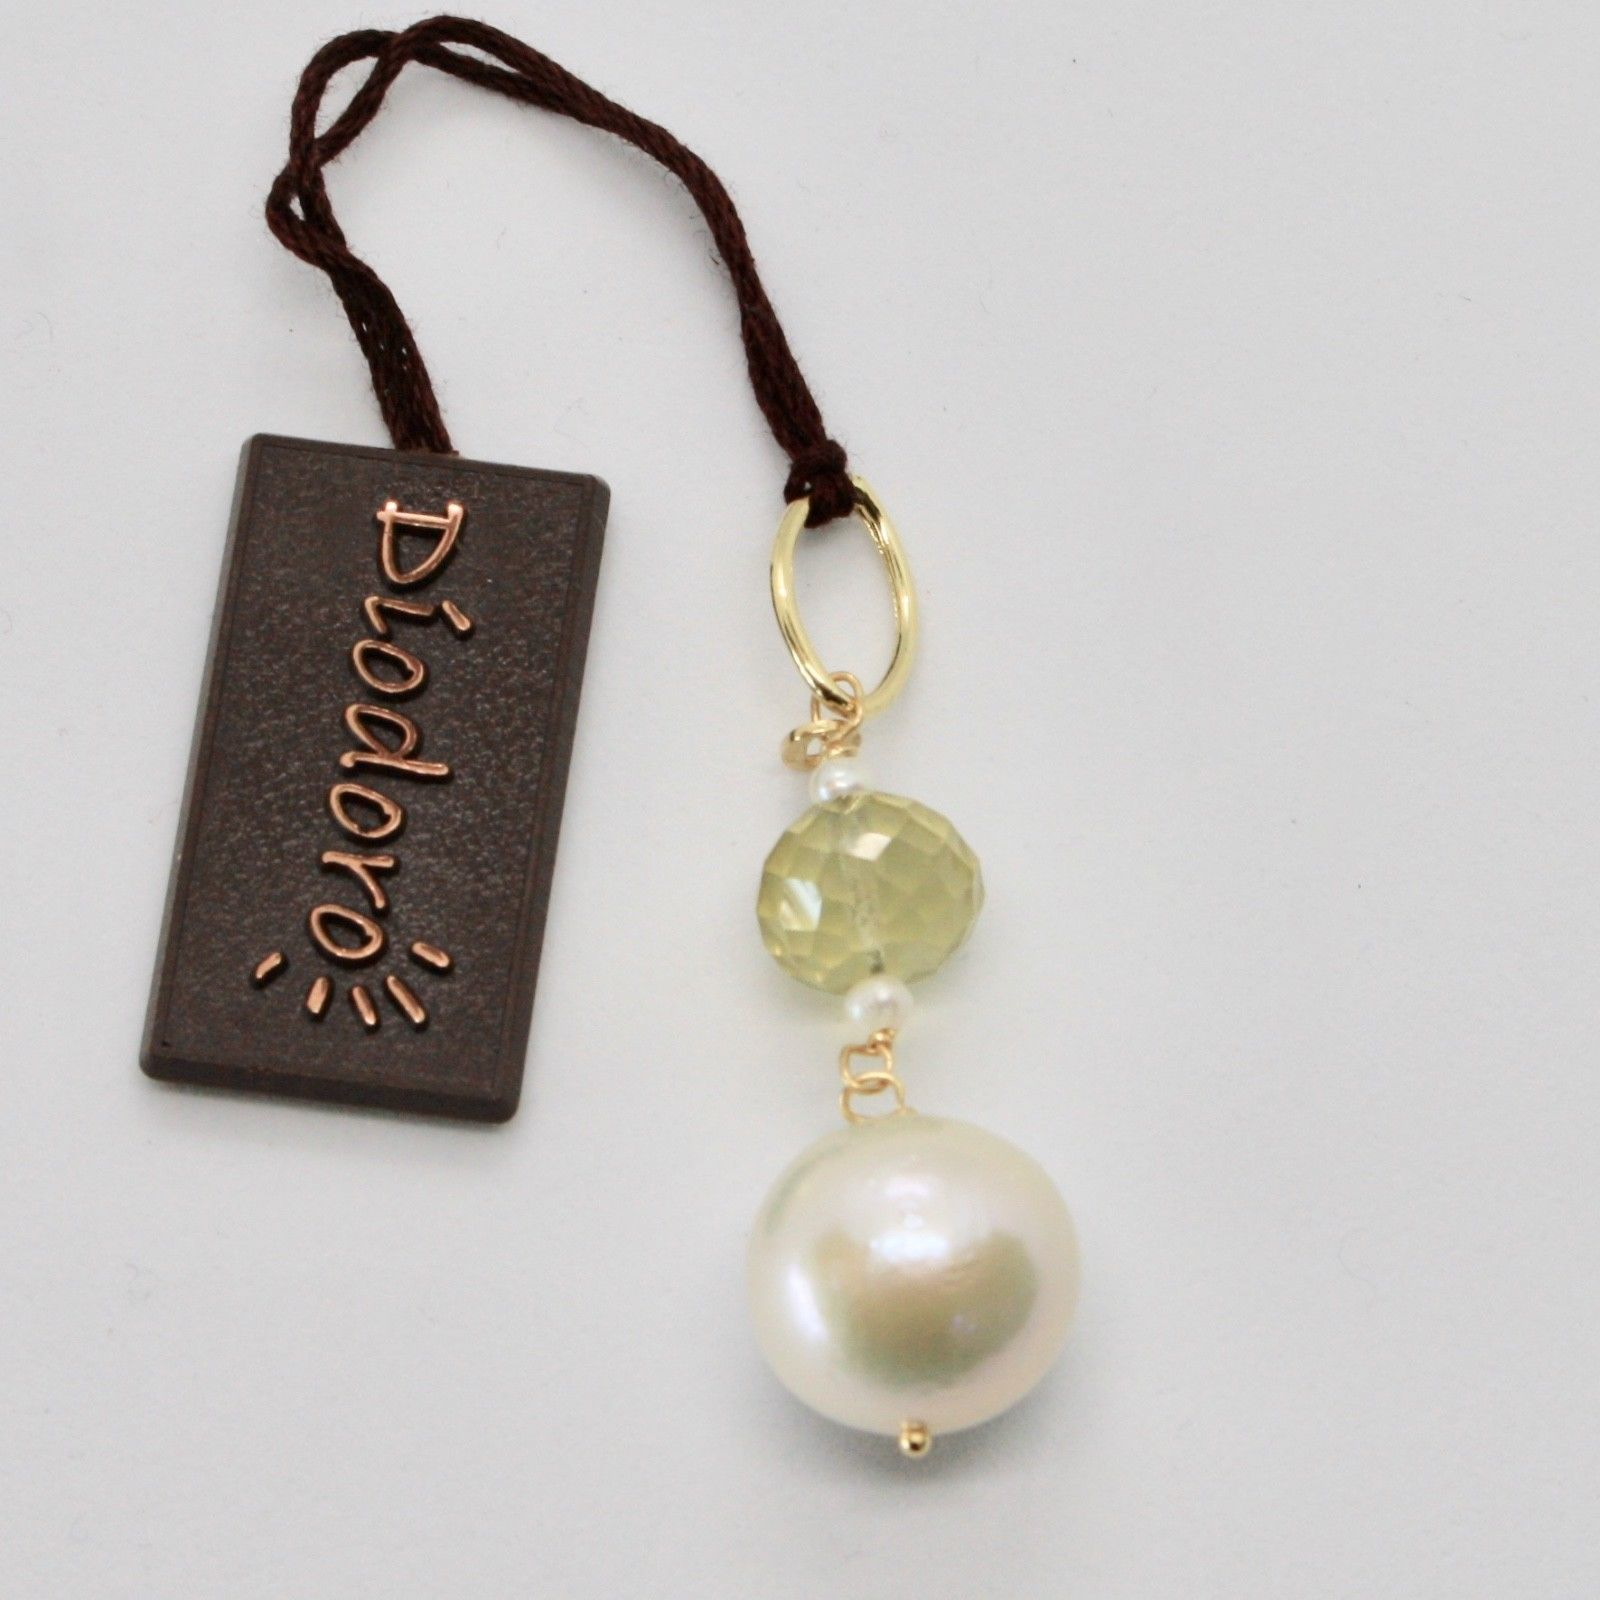 PENDANT YELLOW GOLD 18KT 750 WITH PEARL WHITE FRESH WATER AND QUARTZ LEMON